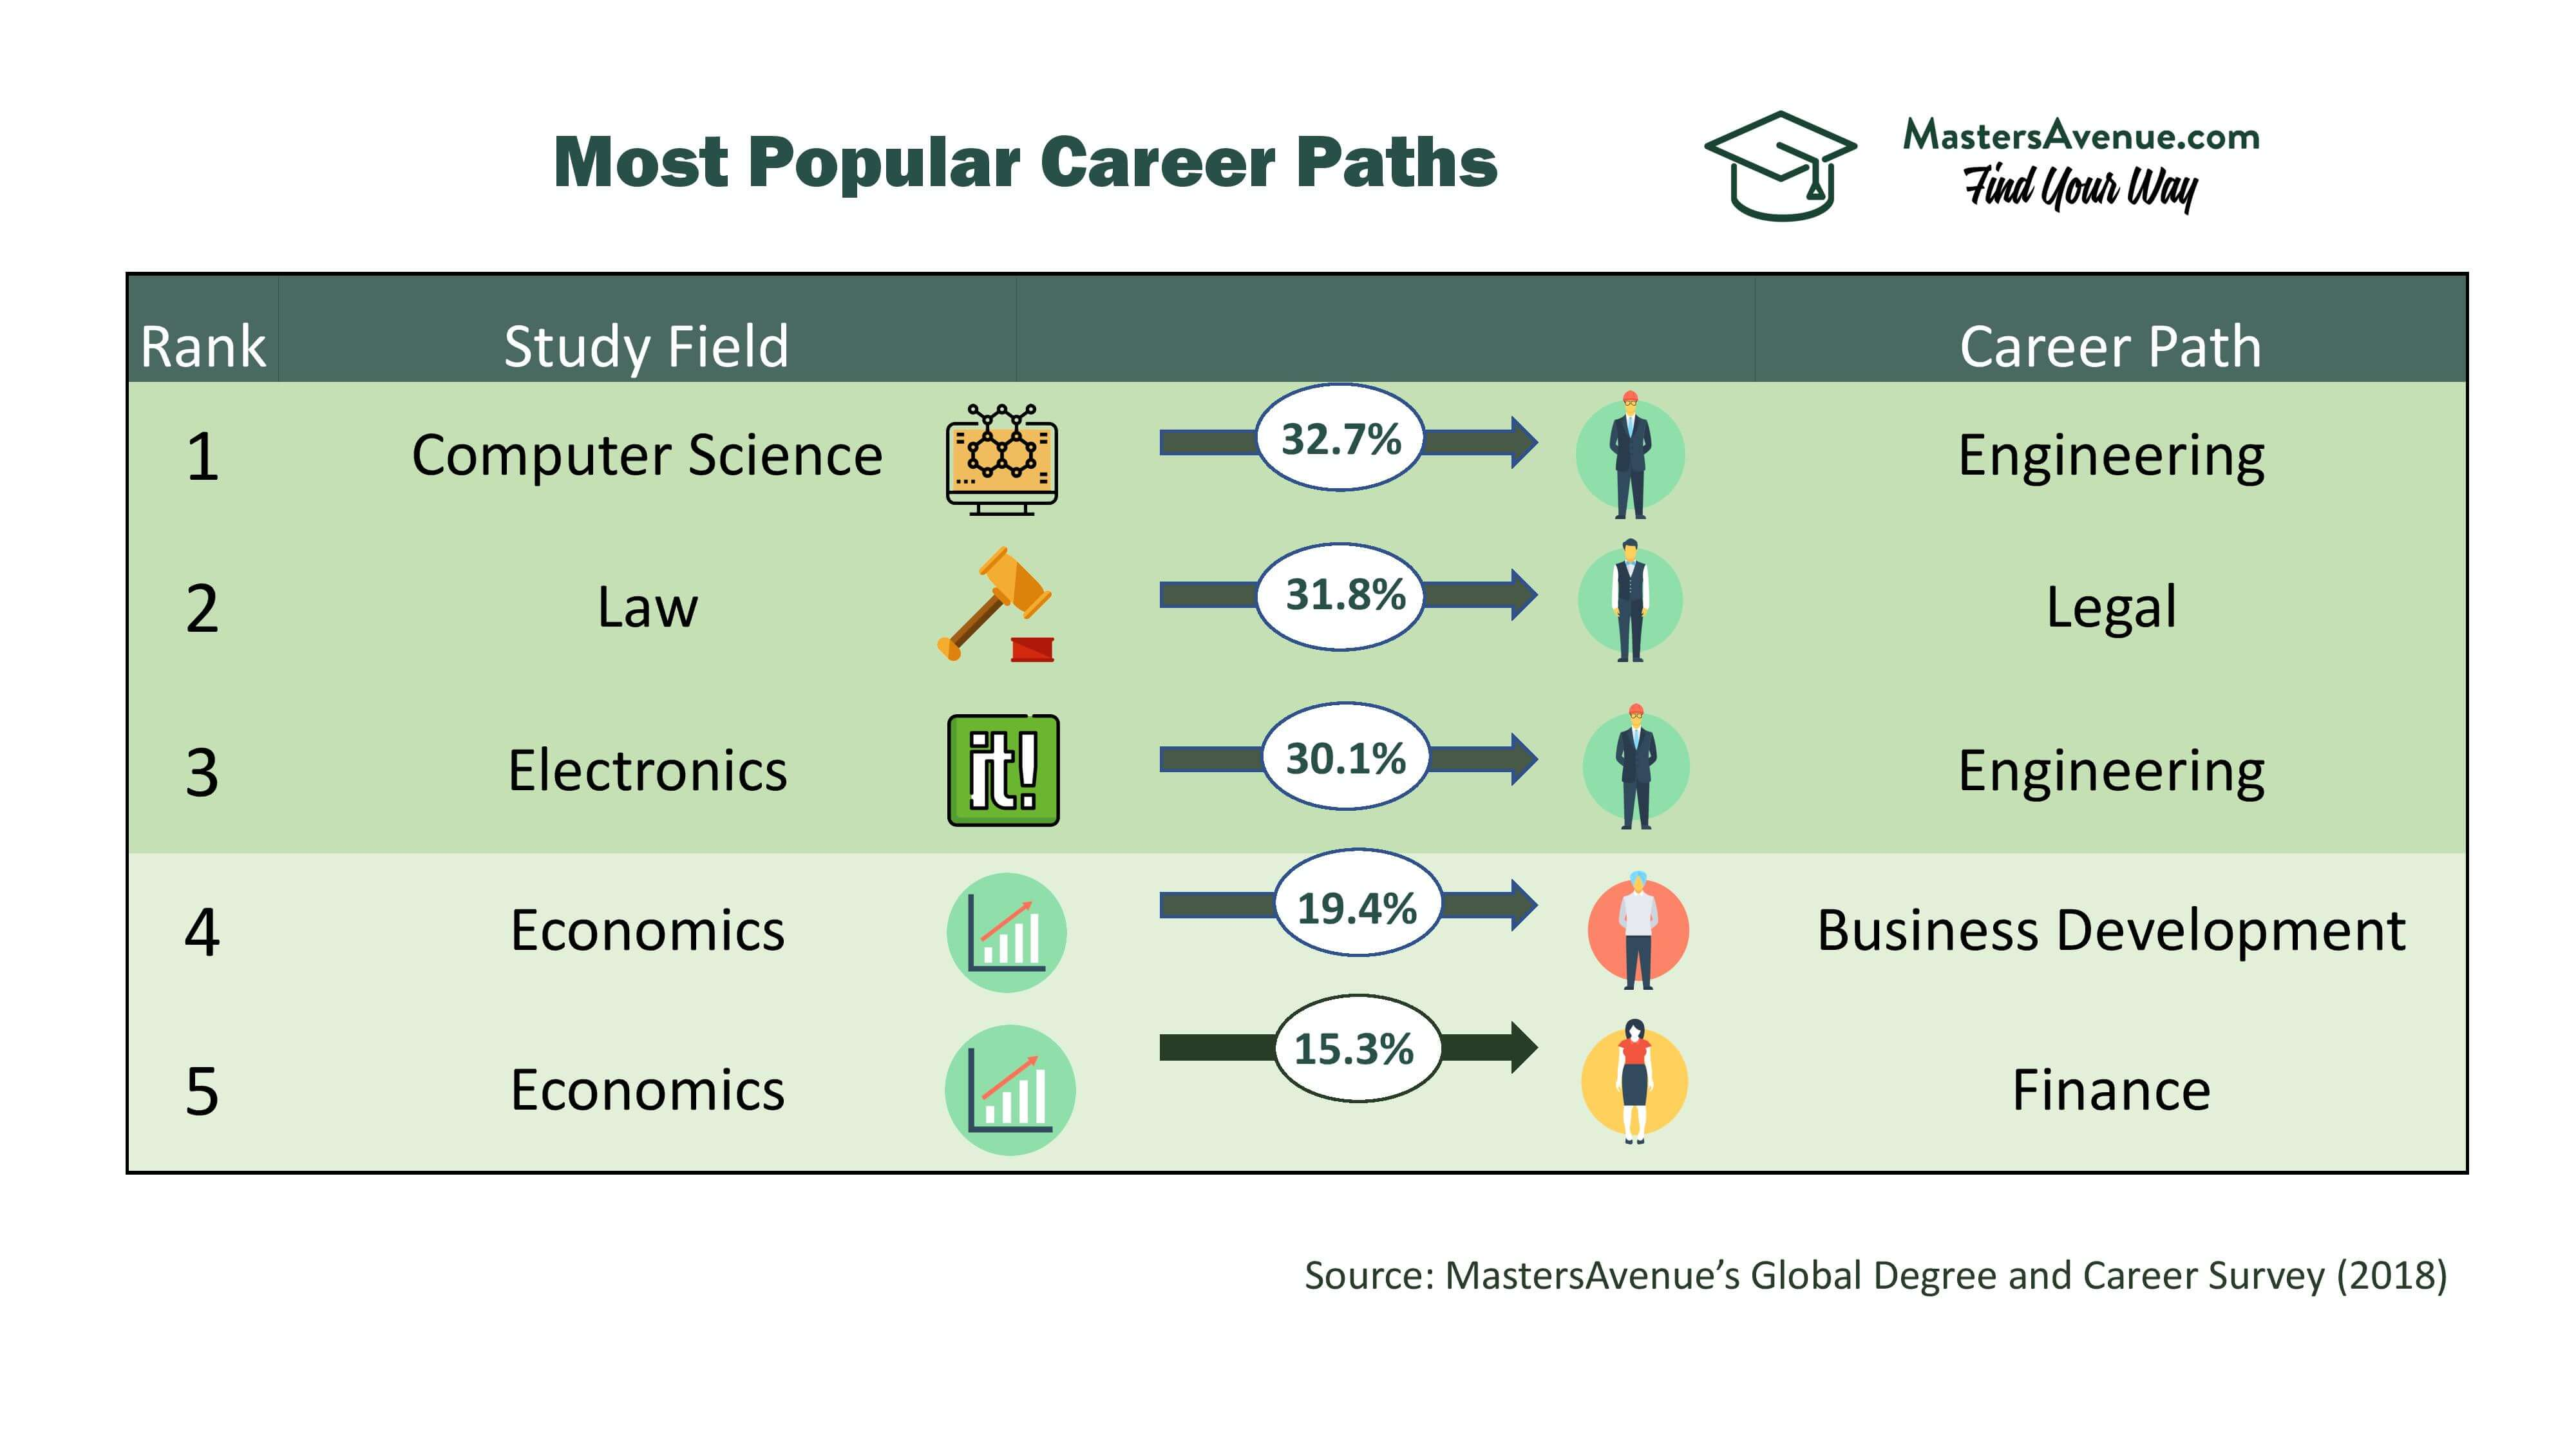 Most Popular Career Paths